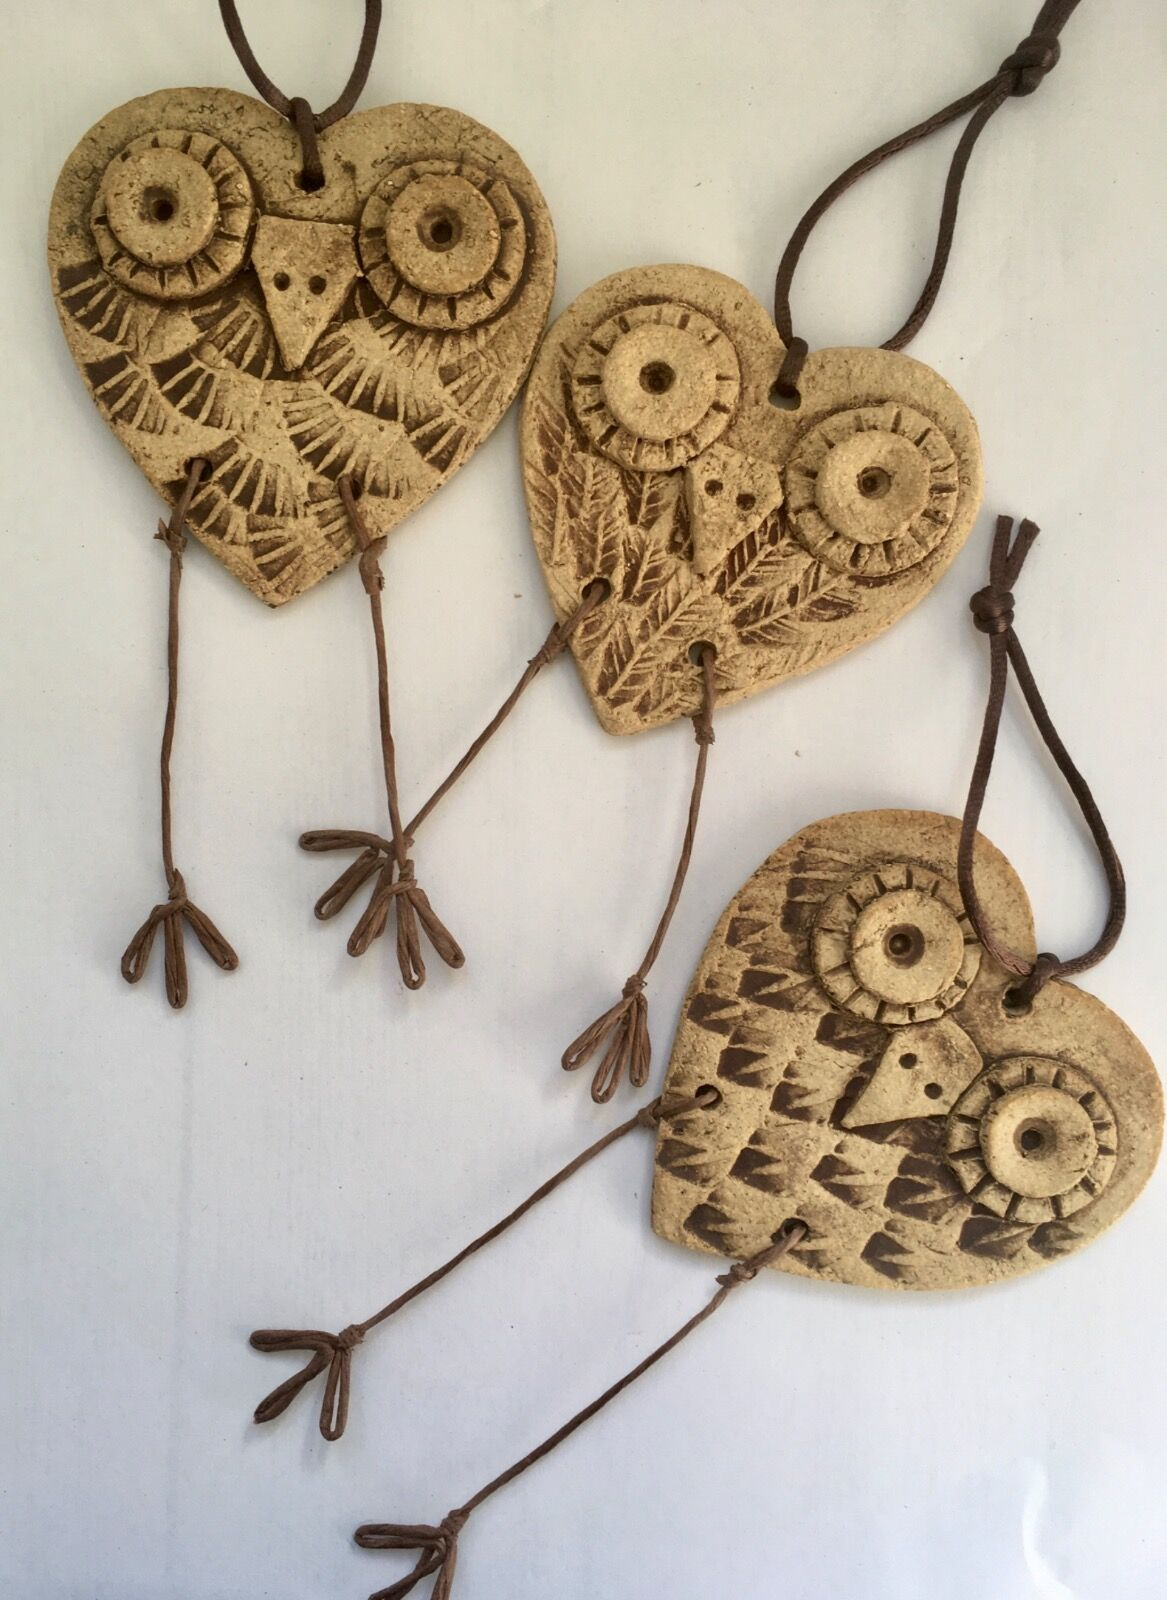 Cheeky owl hangings